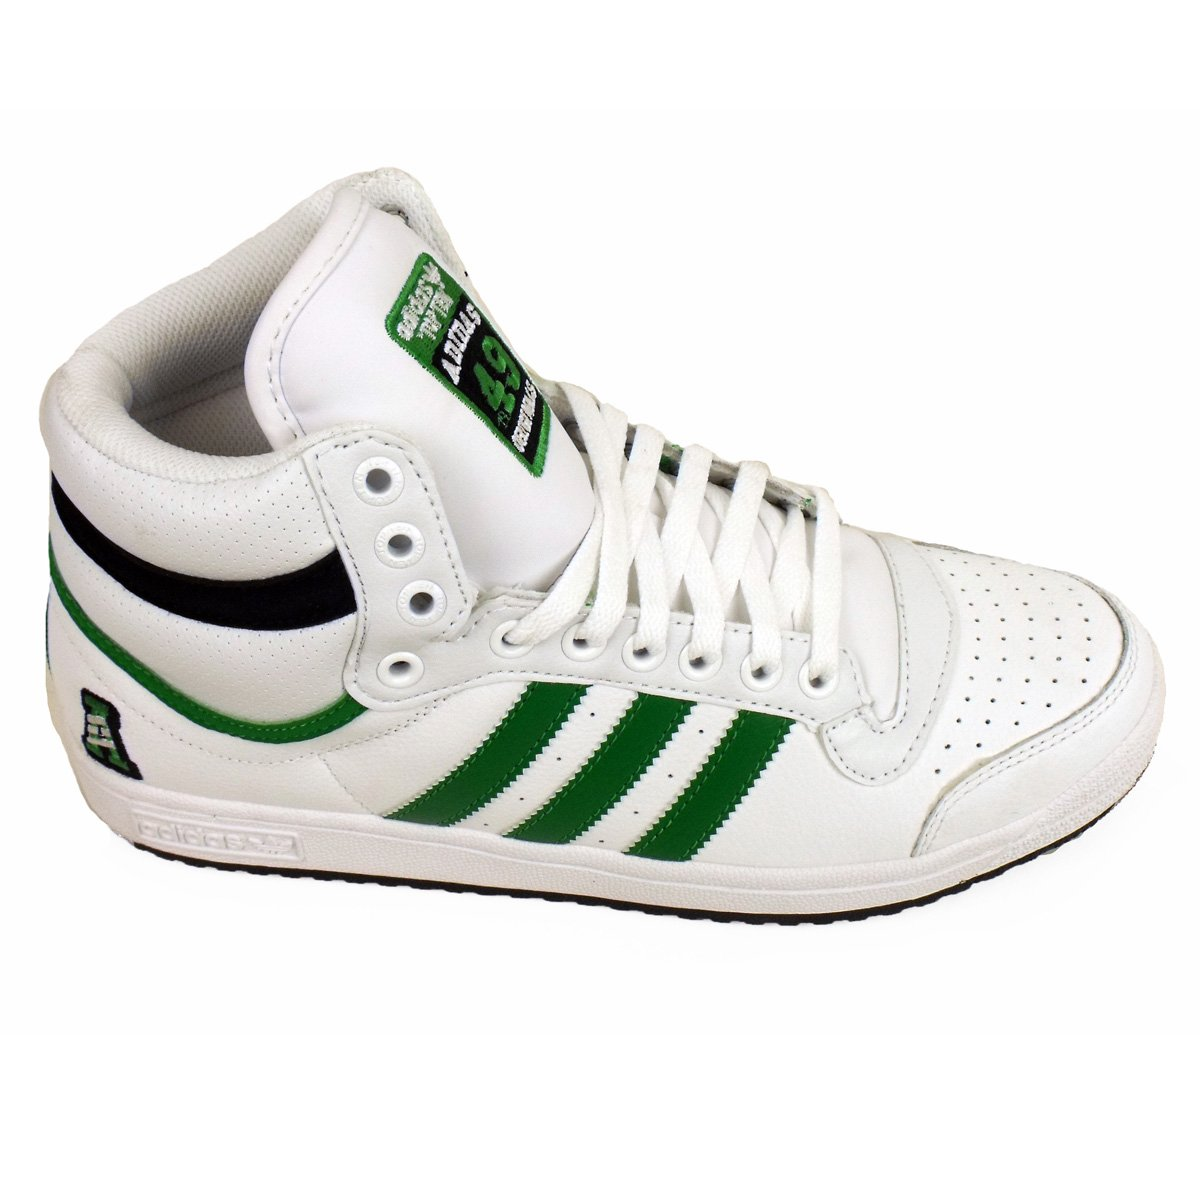 on sale b1b30 889c1 Mens Adidas Top Ten Hi Tops Basketball Boot Trainers Ankle Skate Shoe UK 12   Amazon.co.uk  Shoes   Bags